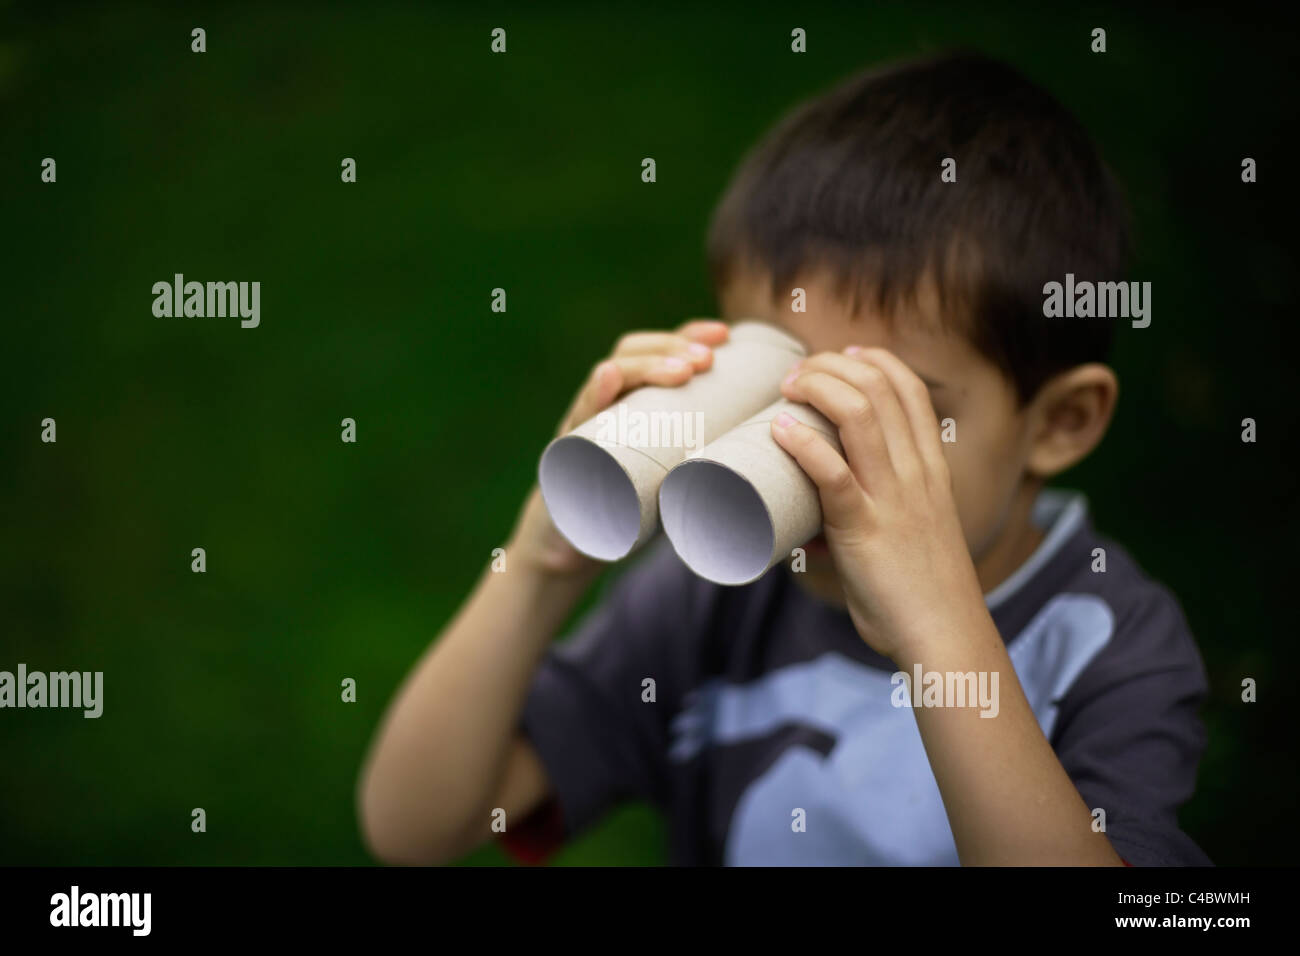 Six year old boy uses toilet cardboard tubes from toilet paper rolls as binoculars. Mixed race, indian athnic, caucasian - Stock Image